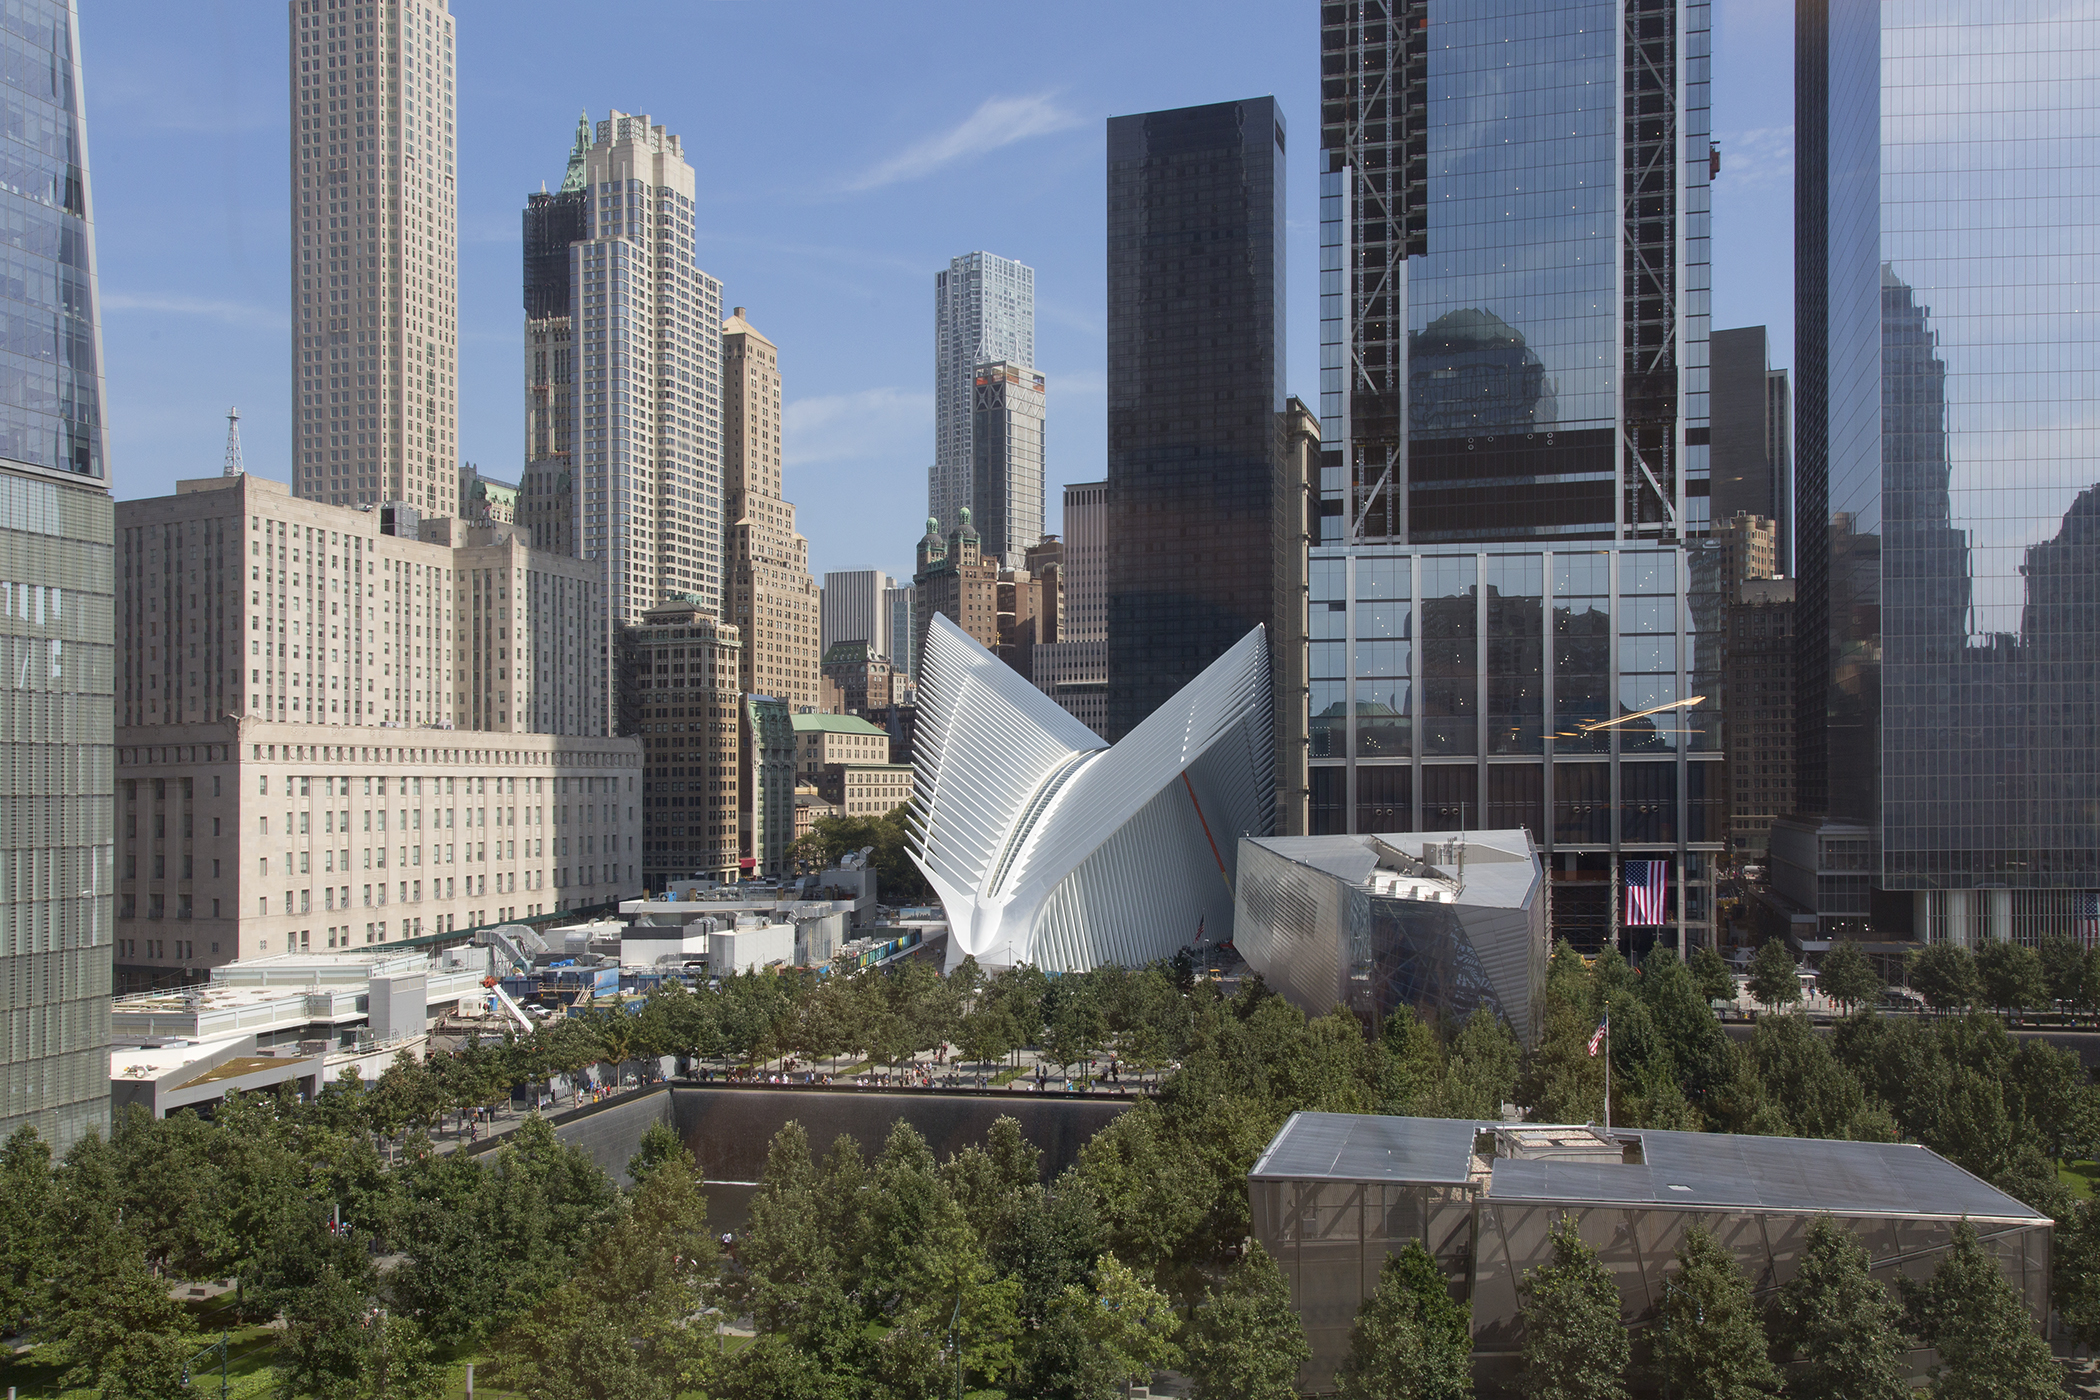 """Ground Zero"" (shown fifteen years later), with Santiago Calatrava's World Financial Center transportation hub, the September 11 Memorial and Museum and 1 WTC visible, New York, September 8, 2016."